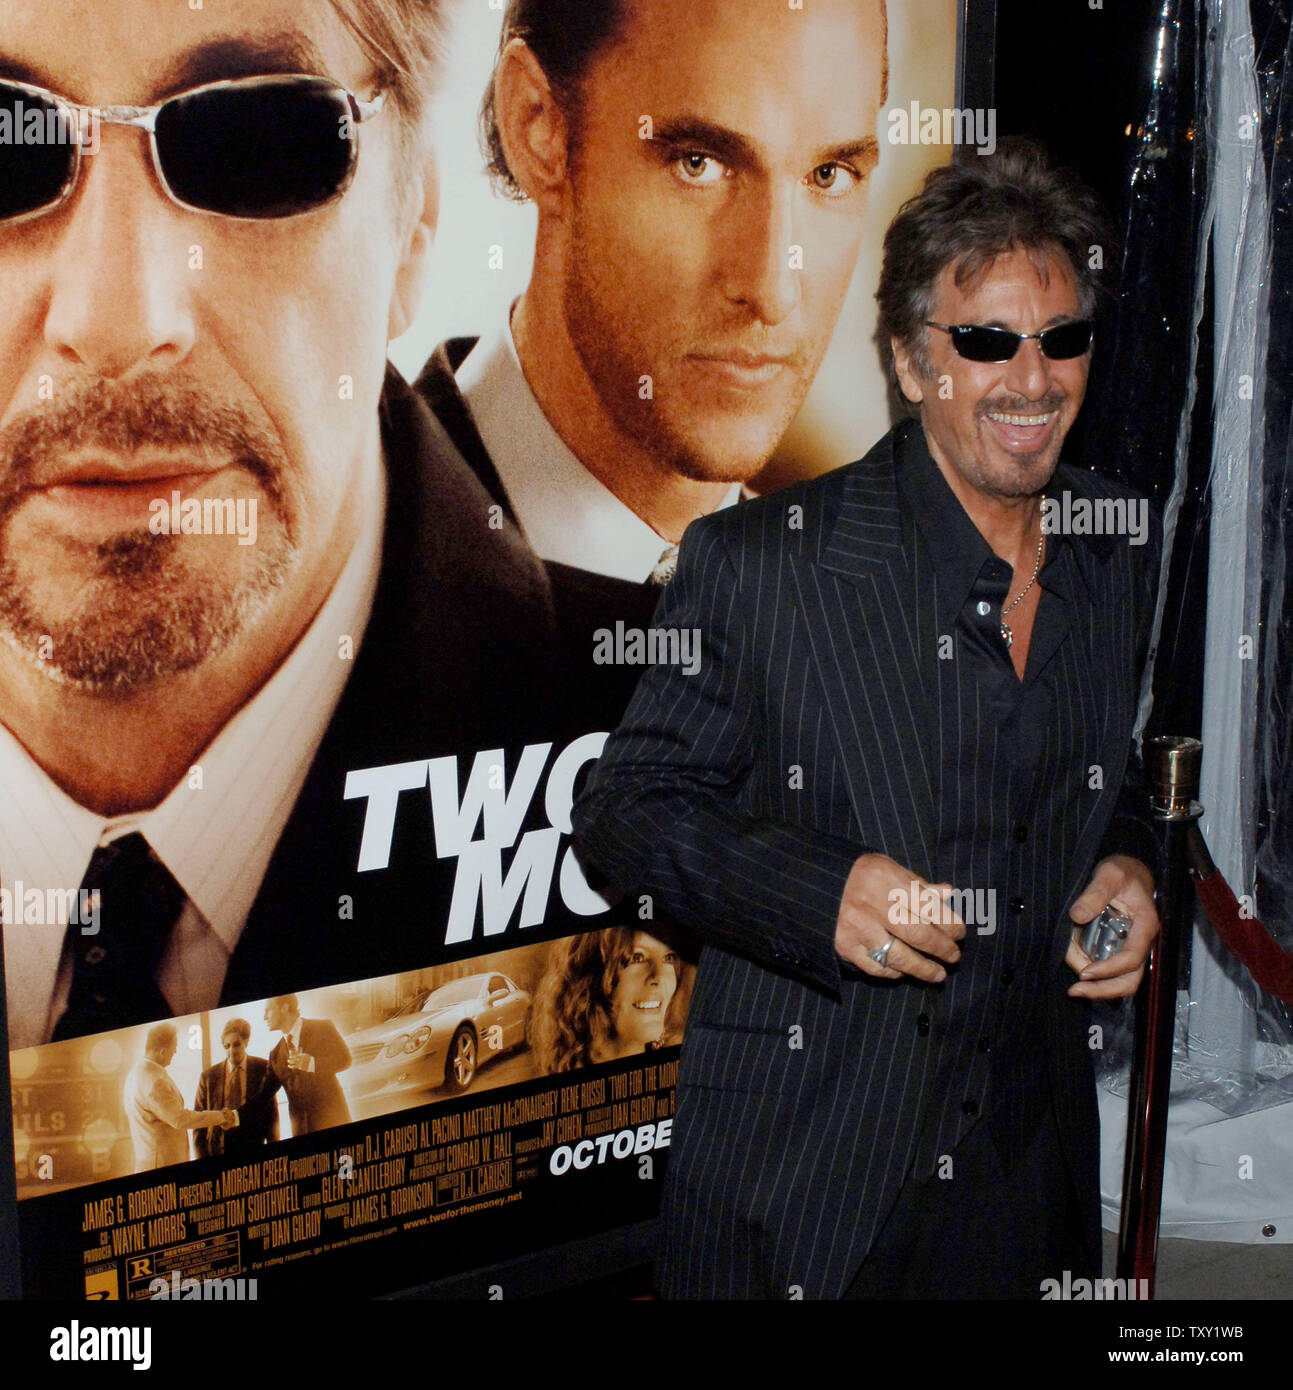 """Actor Al Pacino, one of the stars of the new motion picture """"Two for the Money"""", arrives for the film's premiere in Beverly Hills September 26, 2005. The film also stars Matthew McConaughey, Rene Russo and Jaime King and is about a former college football star who suffers a career-ending injury and aligns himself with one of the most renowned bookies in the sports gambling business. The movie opens October 7 in the United States.   (UPI Photo/Jim Ruymen) Stock Photo"""